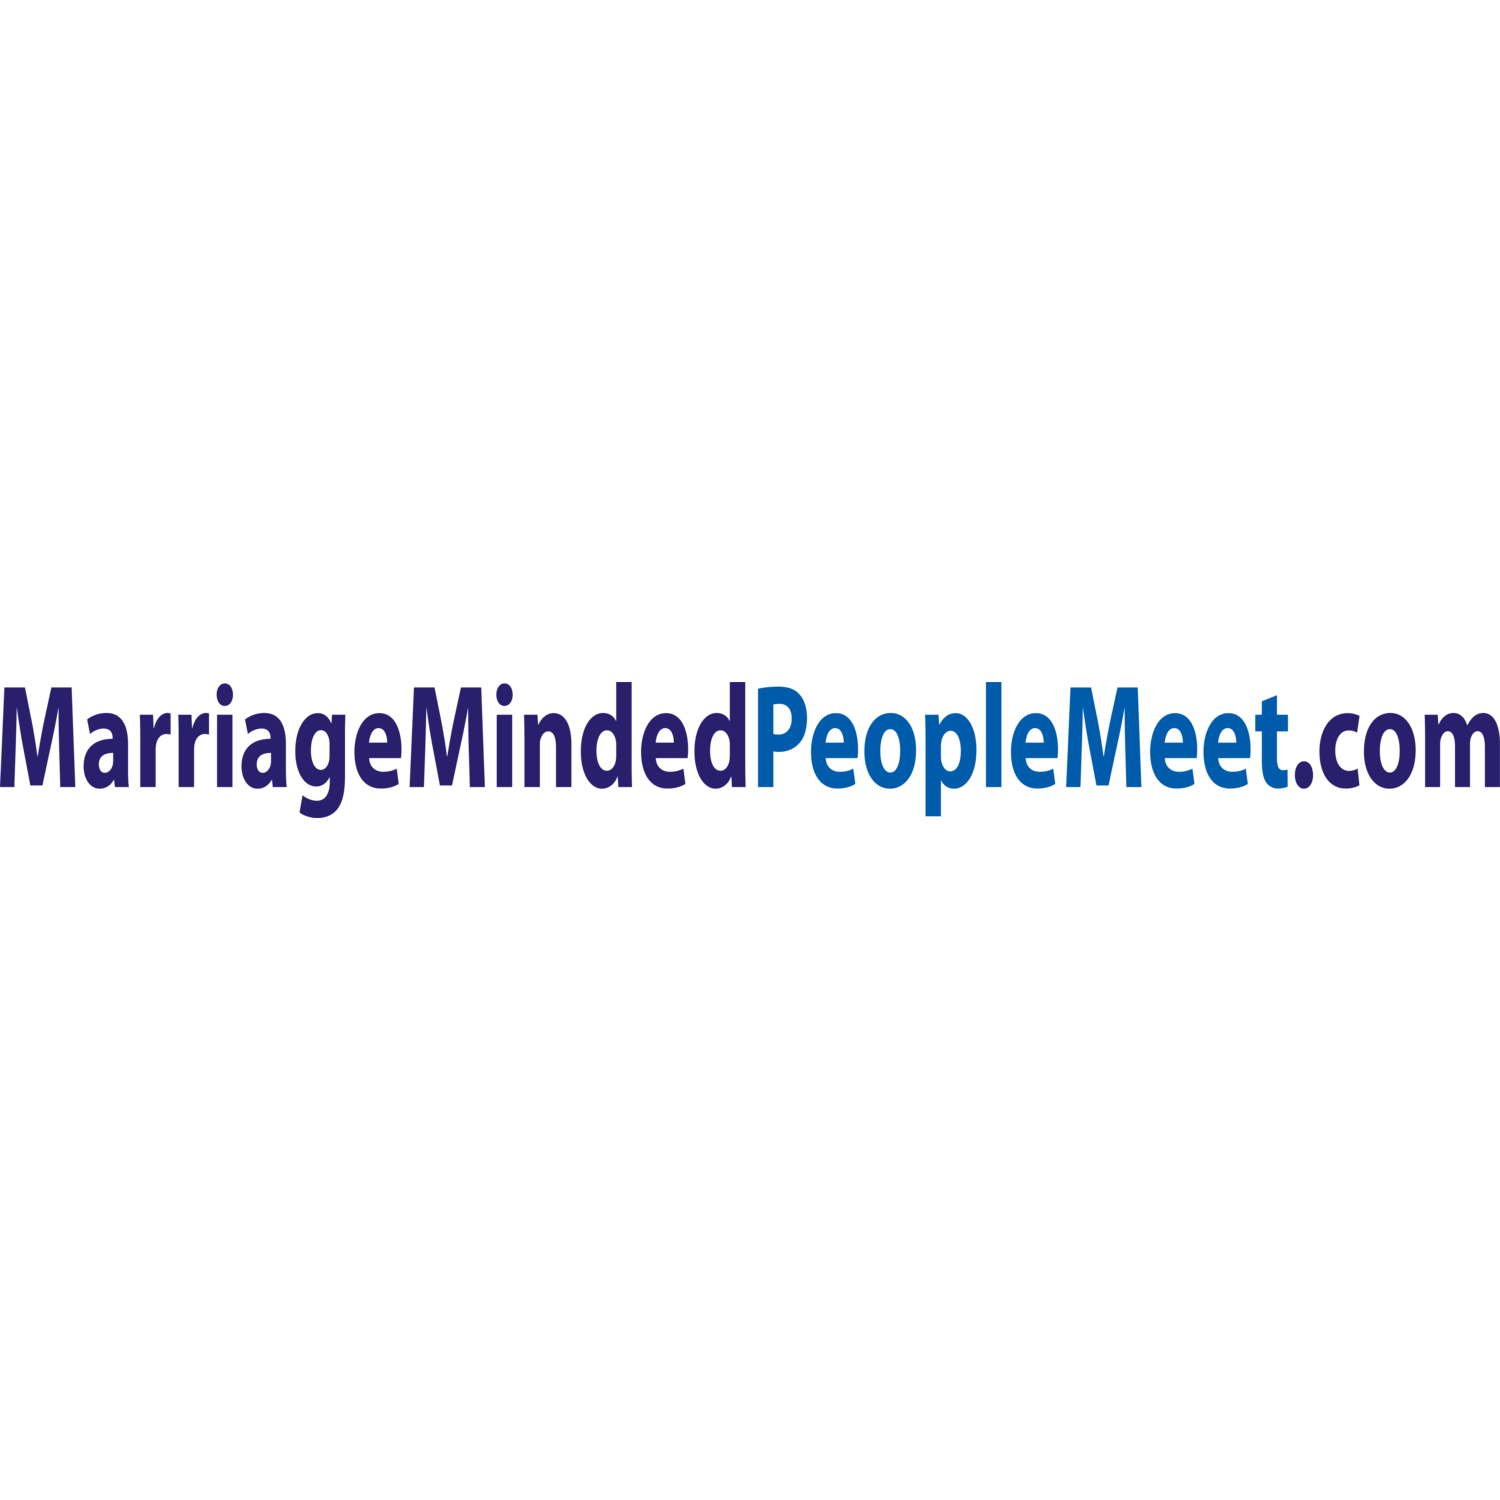 MarriageMindedPeopleMeet's Review – GoMarry.com VS MarriageMindedPeopleMeet!